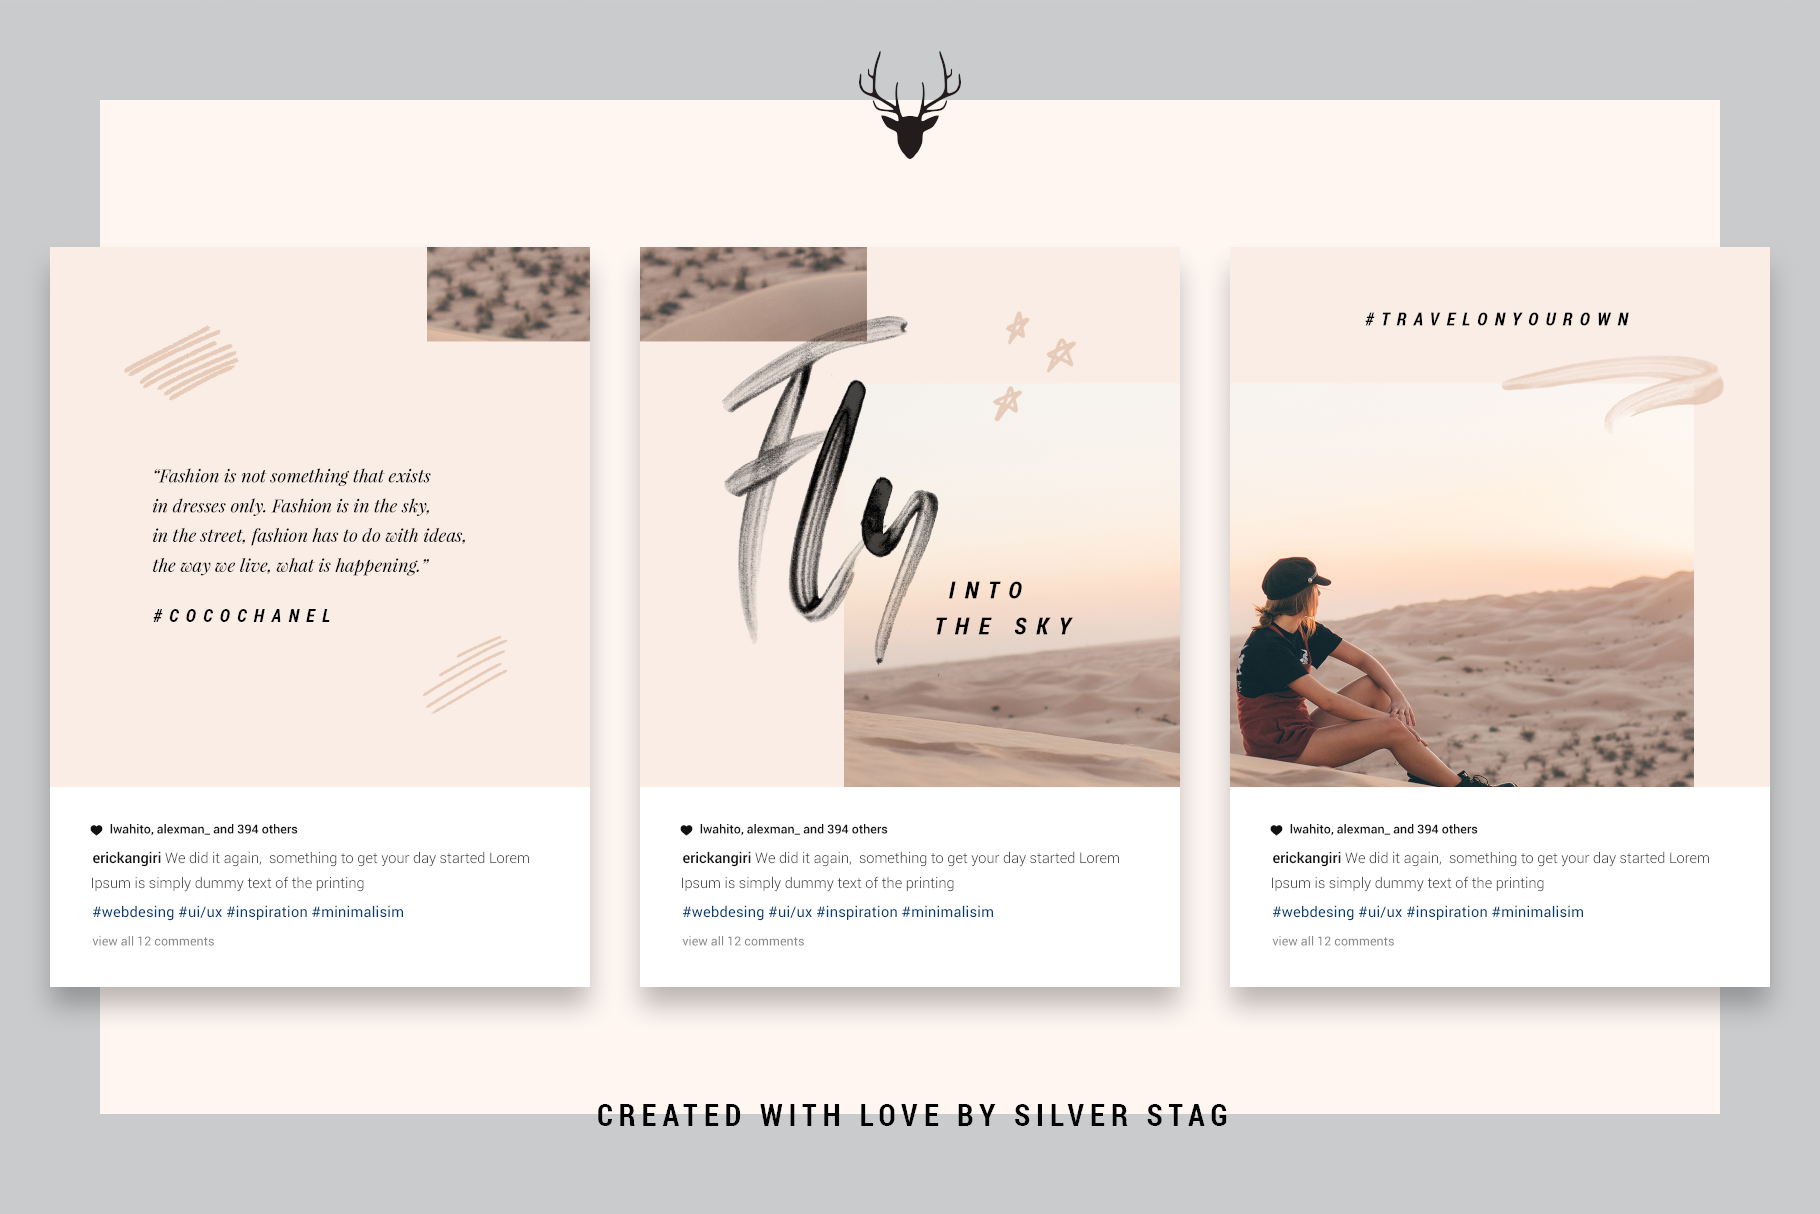 InstaGrid 5.0 - Creative & Modern Instagram Puzzle Template example image 7